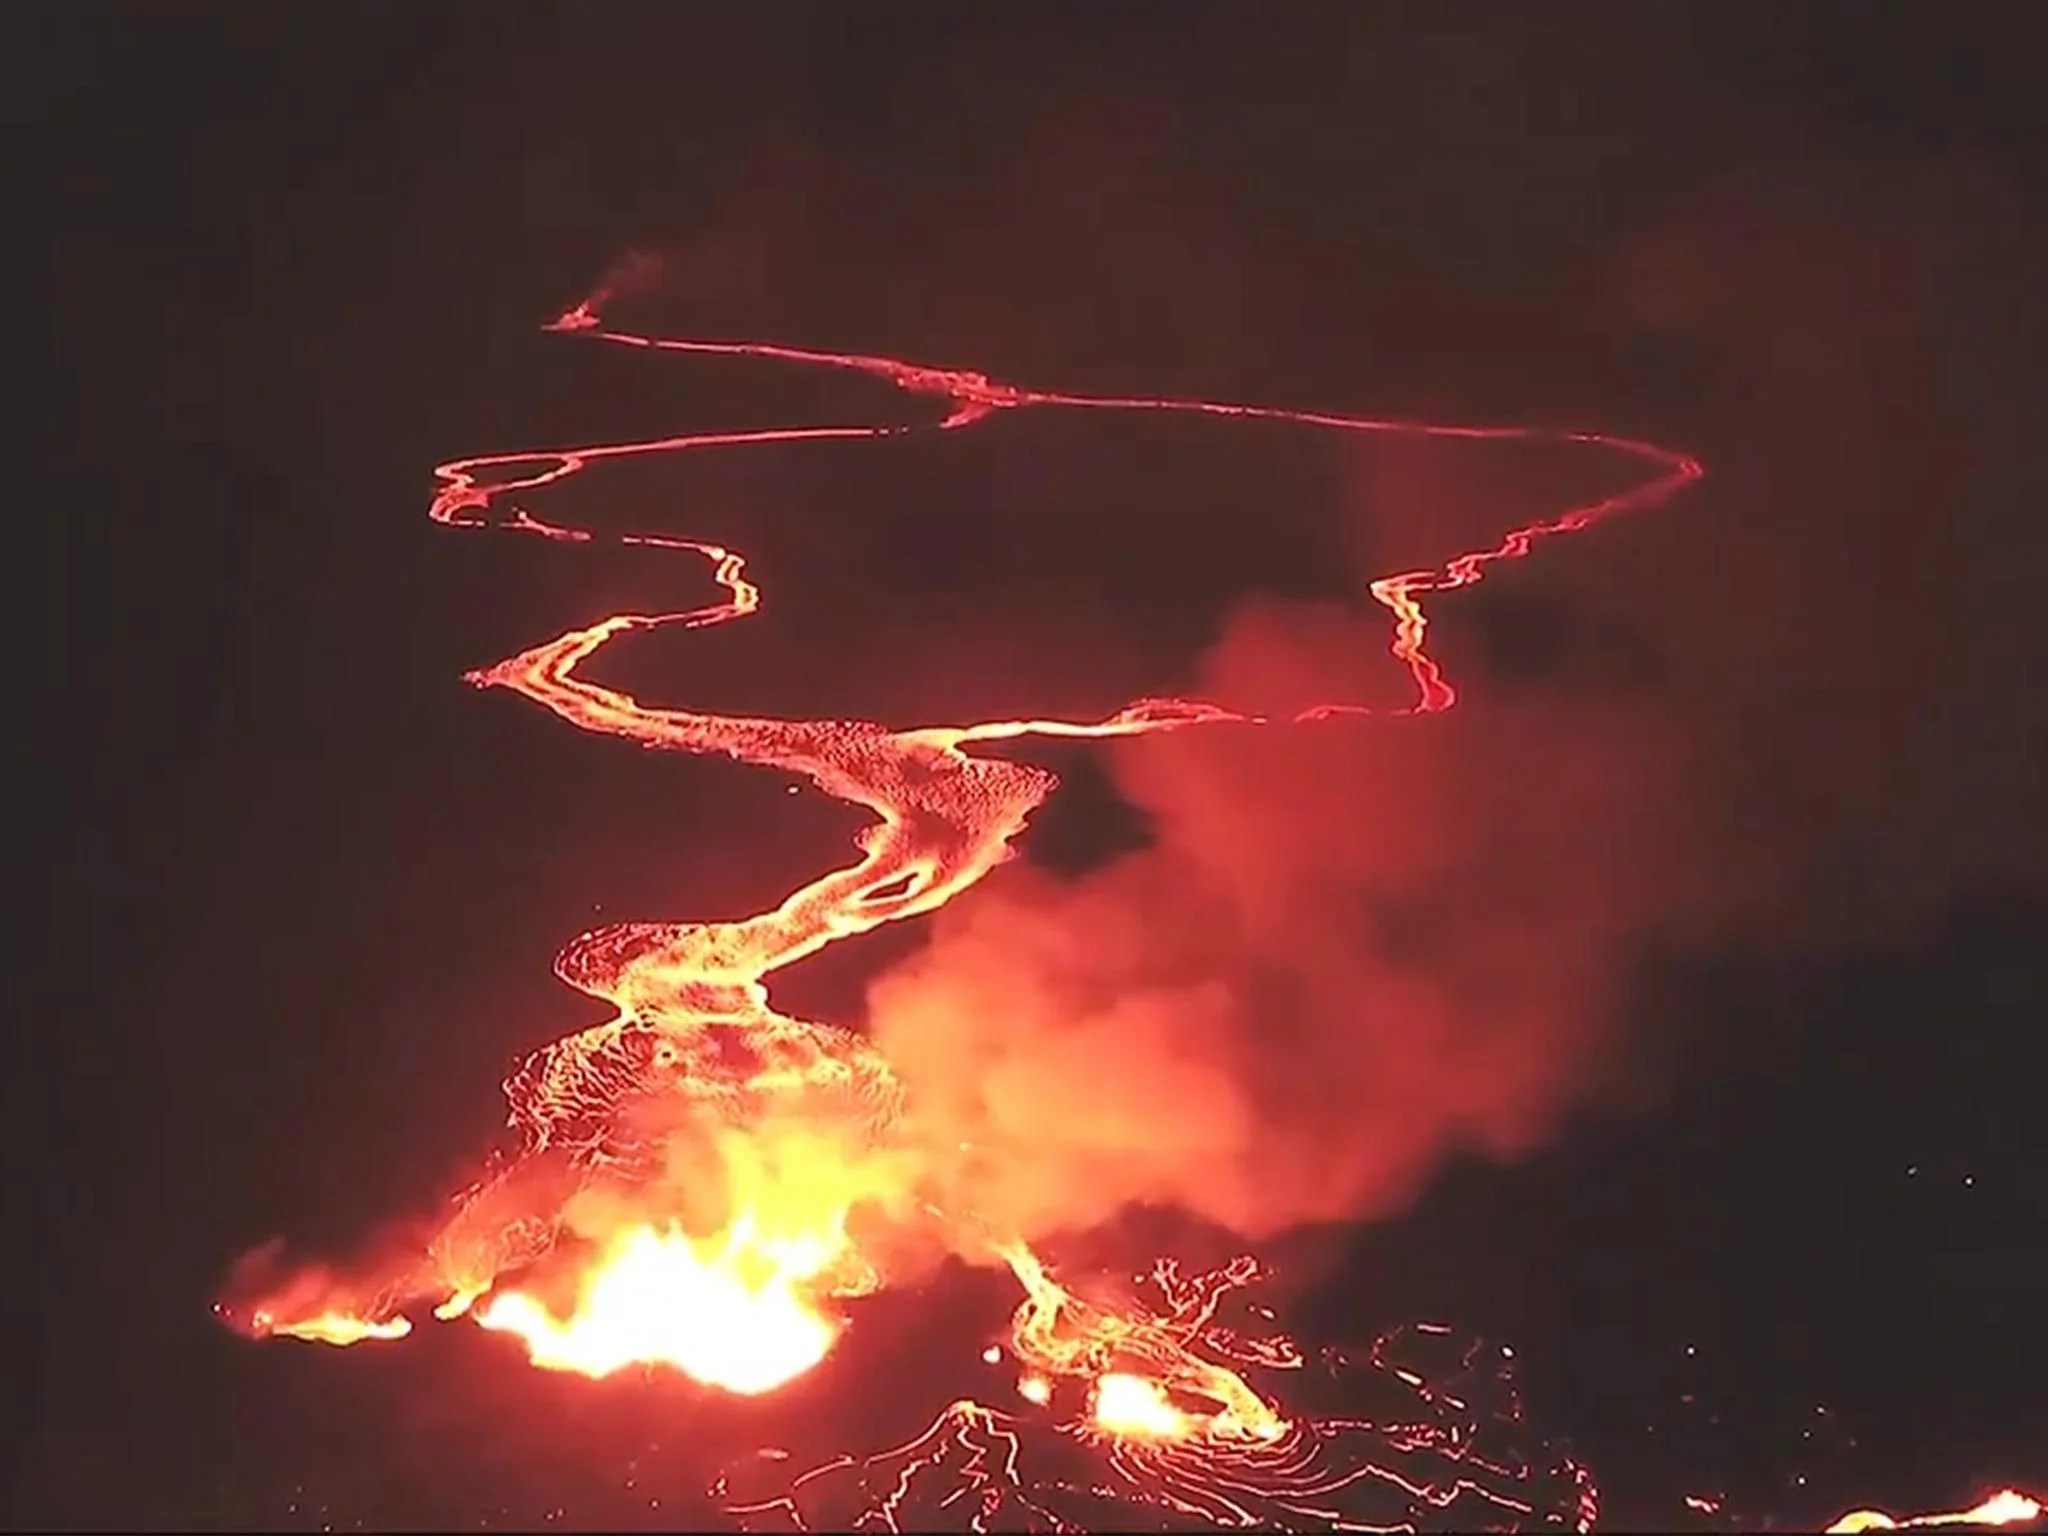 Hawaii Volcano Aerial Footage Shows Rivers Of Lava Flowing To The Ocean